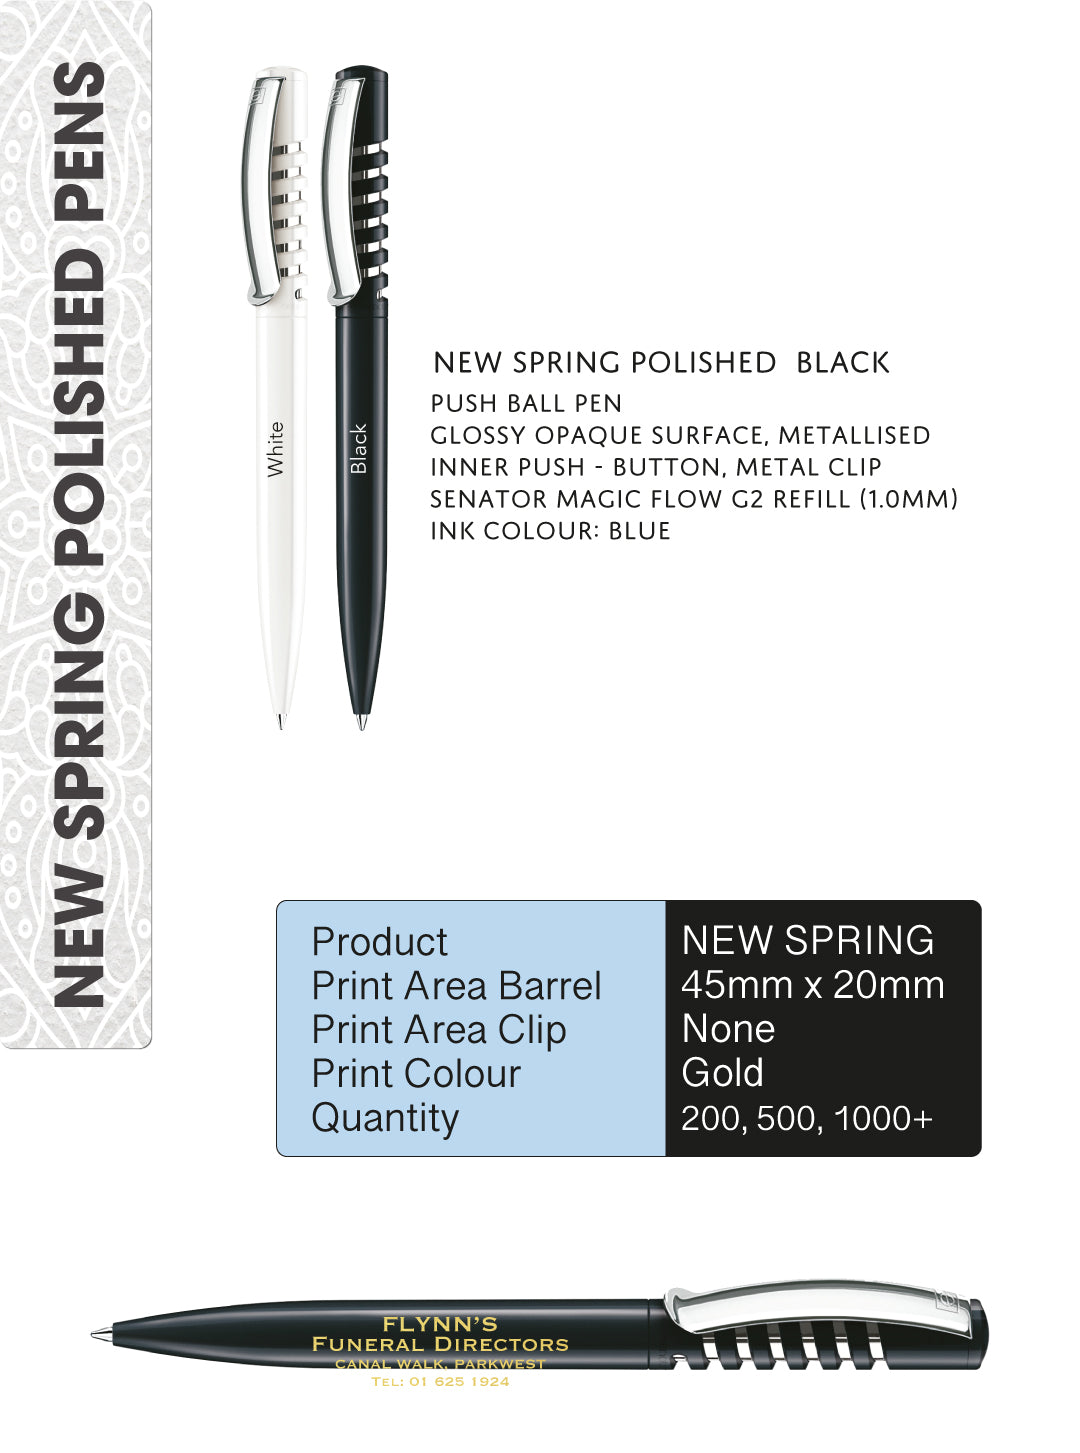 New Spring Polished Pens